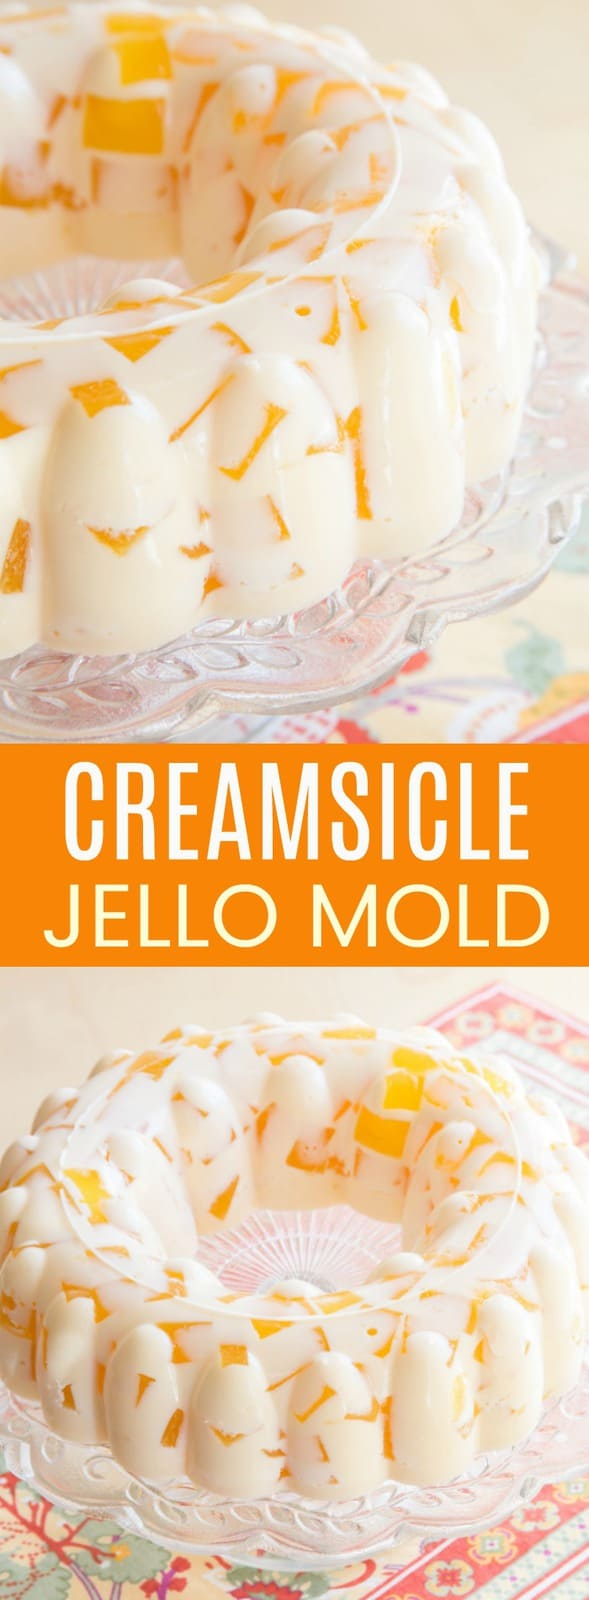 Creamsicle Jello Mold - cubes of fresh orange jello floating in vanilla ice cream gelatin is a creamy and fun retro dessert based on vintage recipes. This gluten-free no-bake dessert recipe is perfect for spring and summer. #cupcakesandkalechips #creamsicle #jello #jellomold #jellosalad #retrorecipe #glutenfree #nobakedessert